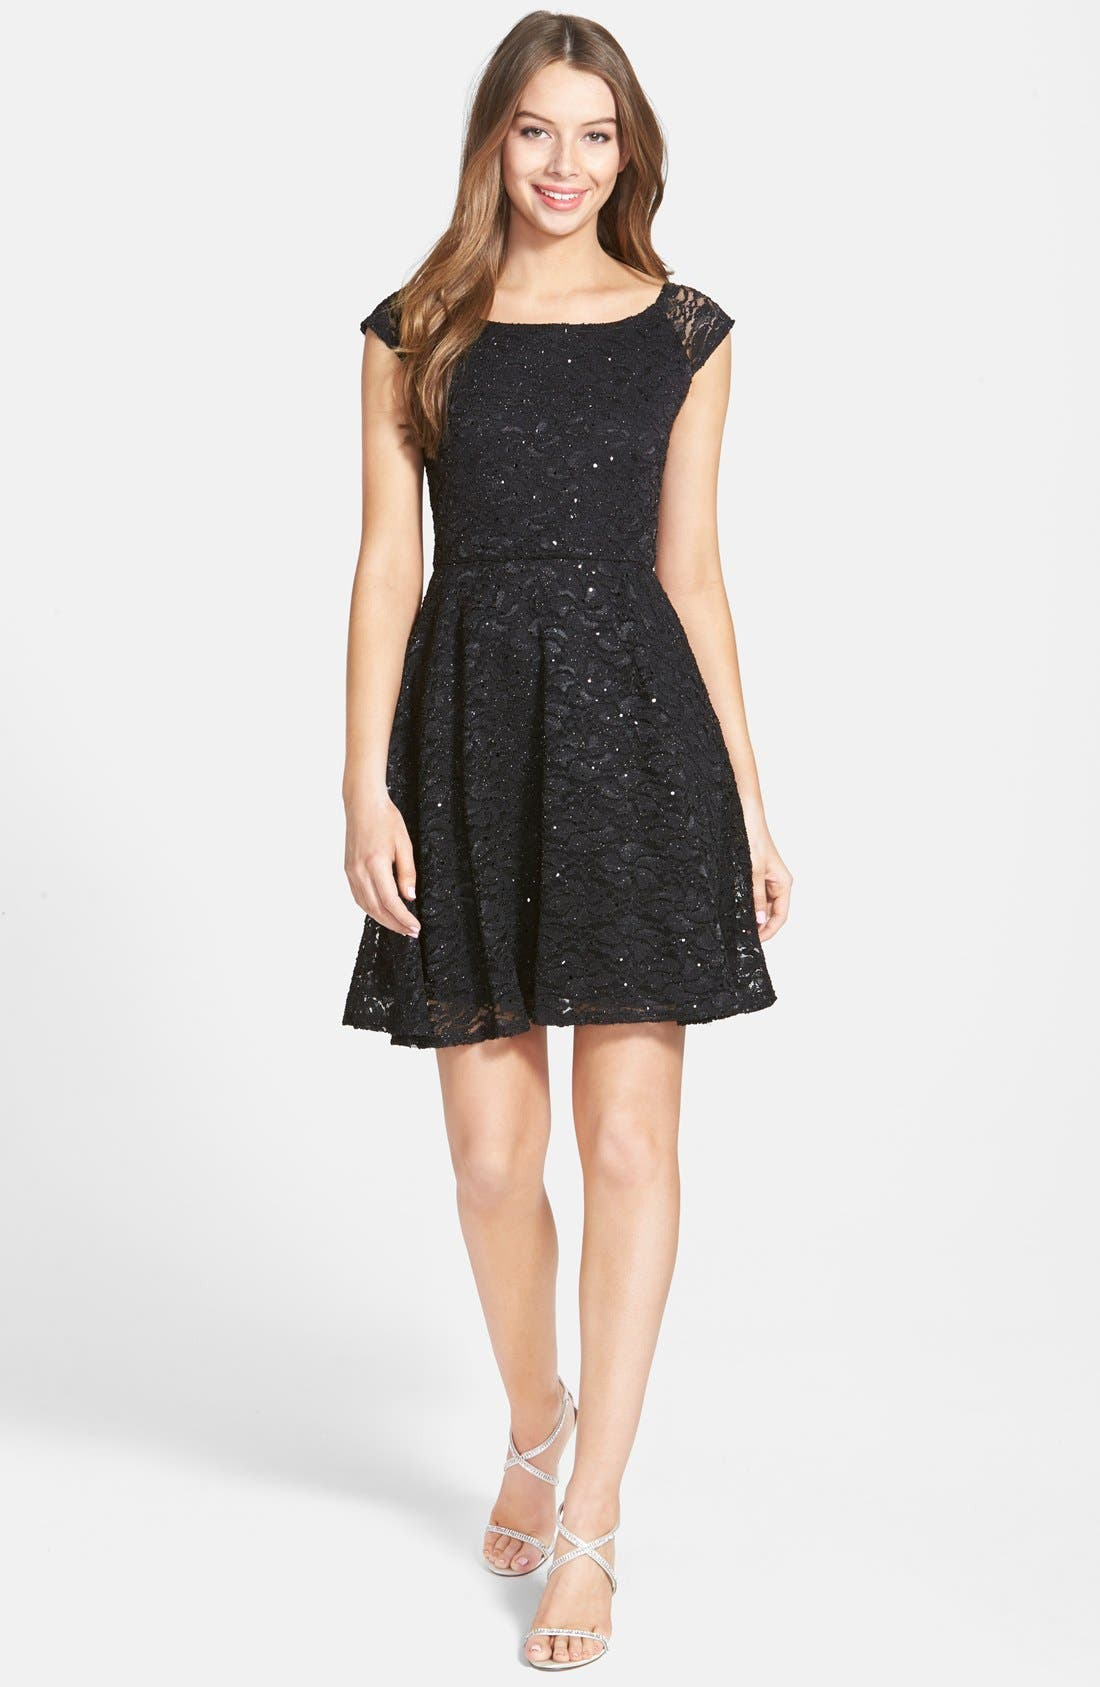 Alternate Image 1 Selected - Jump Apparel Glitter Lace Cap Sleeve Skater Dress